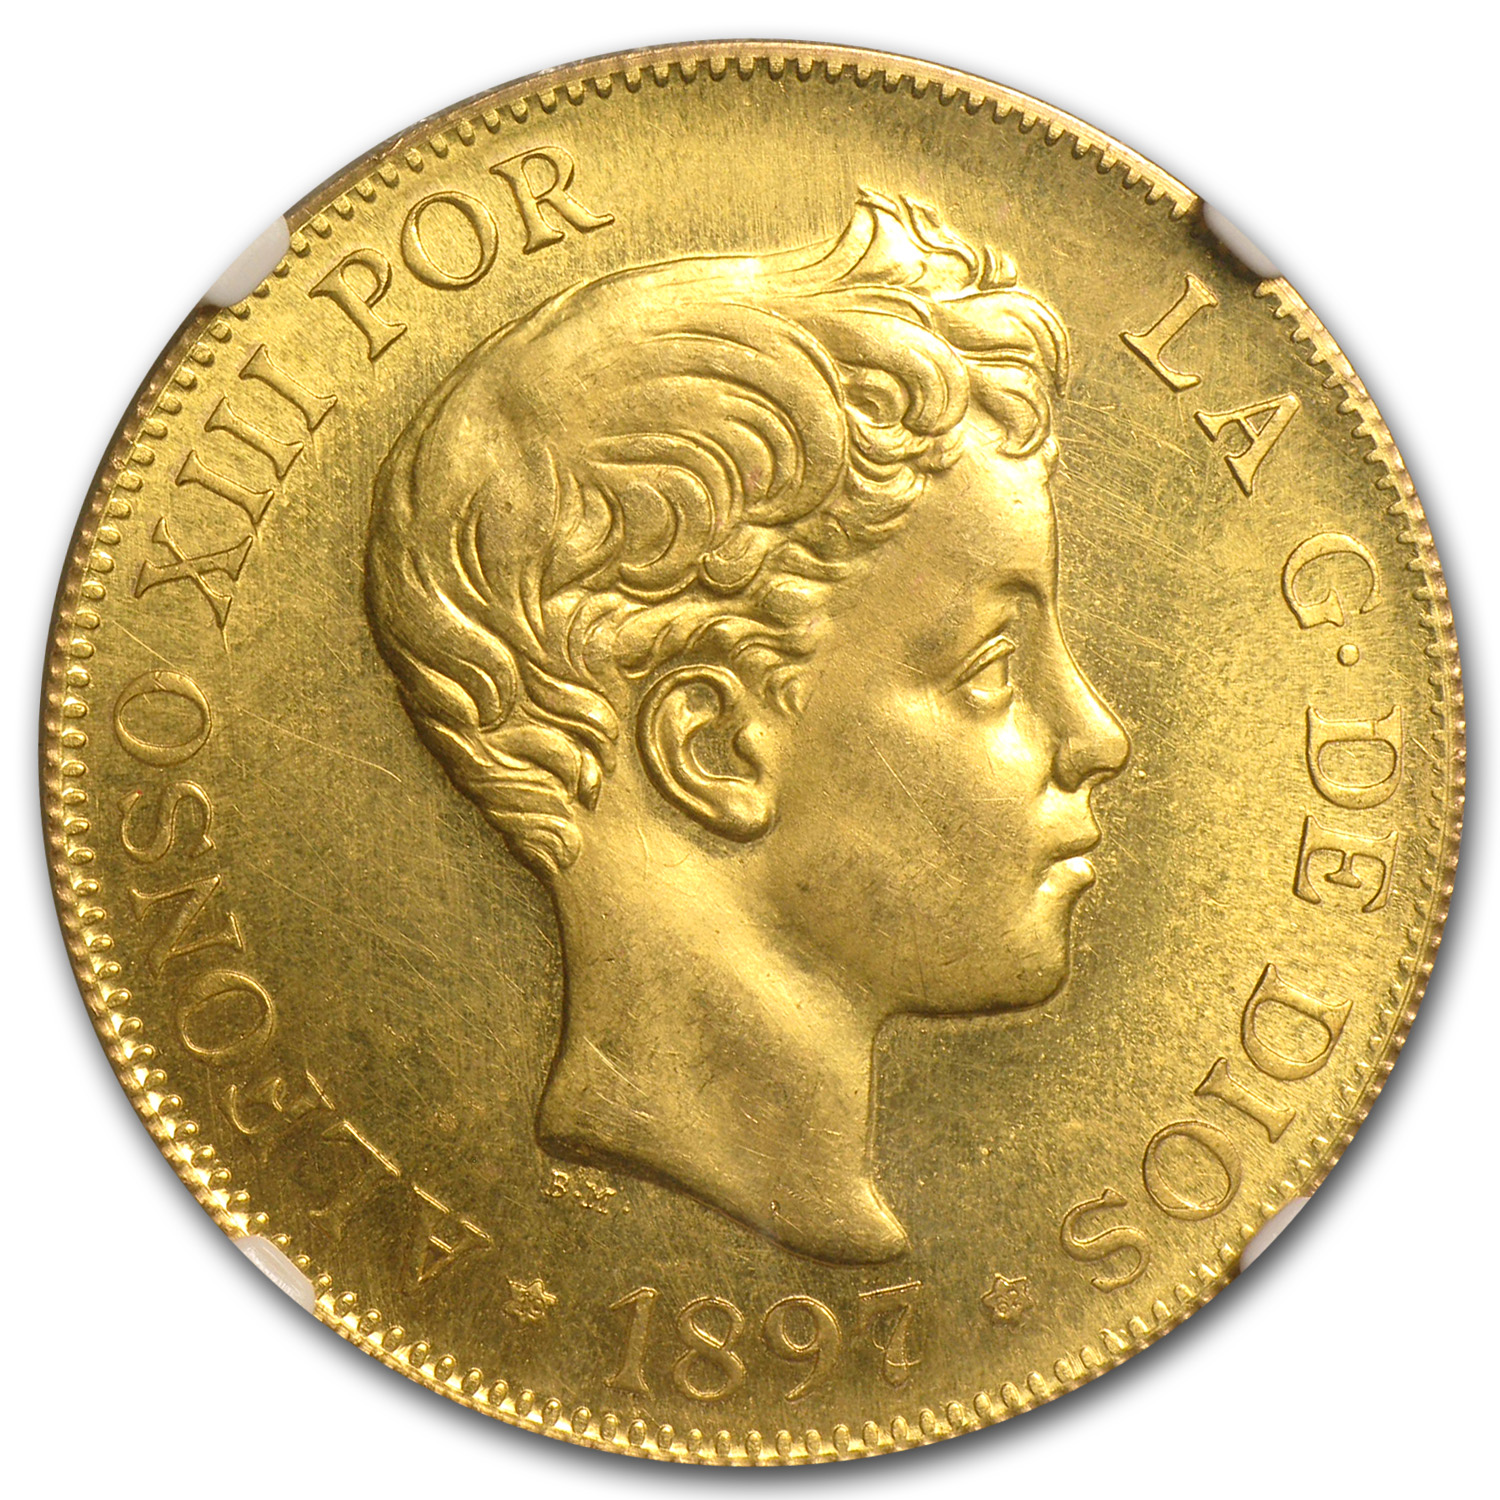 Spain 1897(62) SG-V Gold 100 Pesetas MS-64 NGC